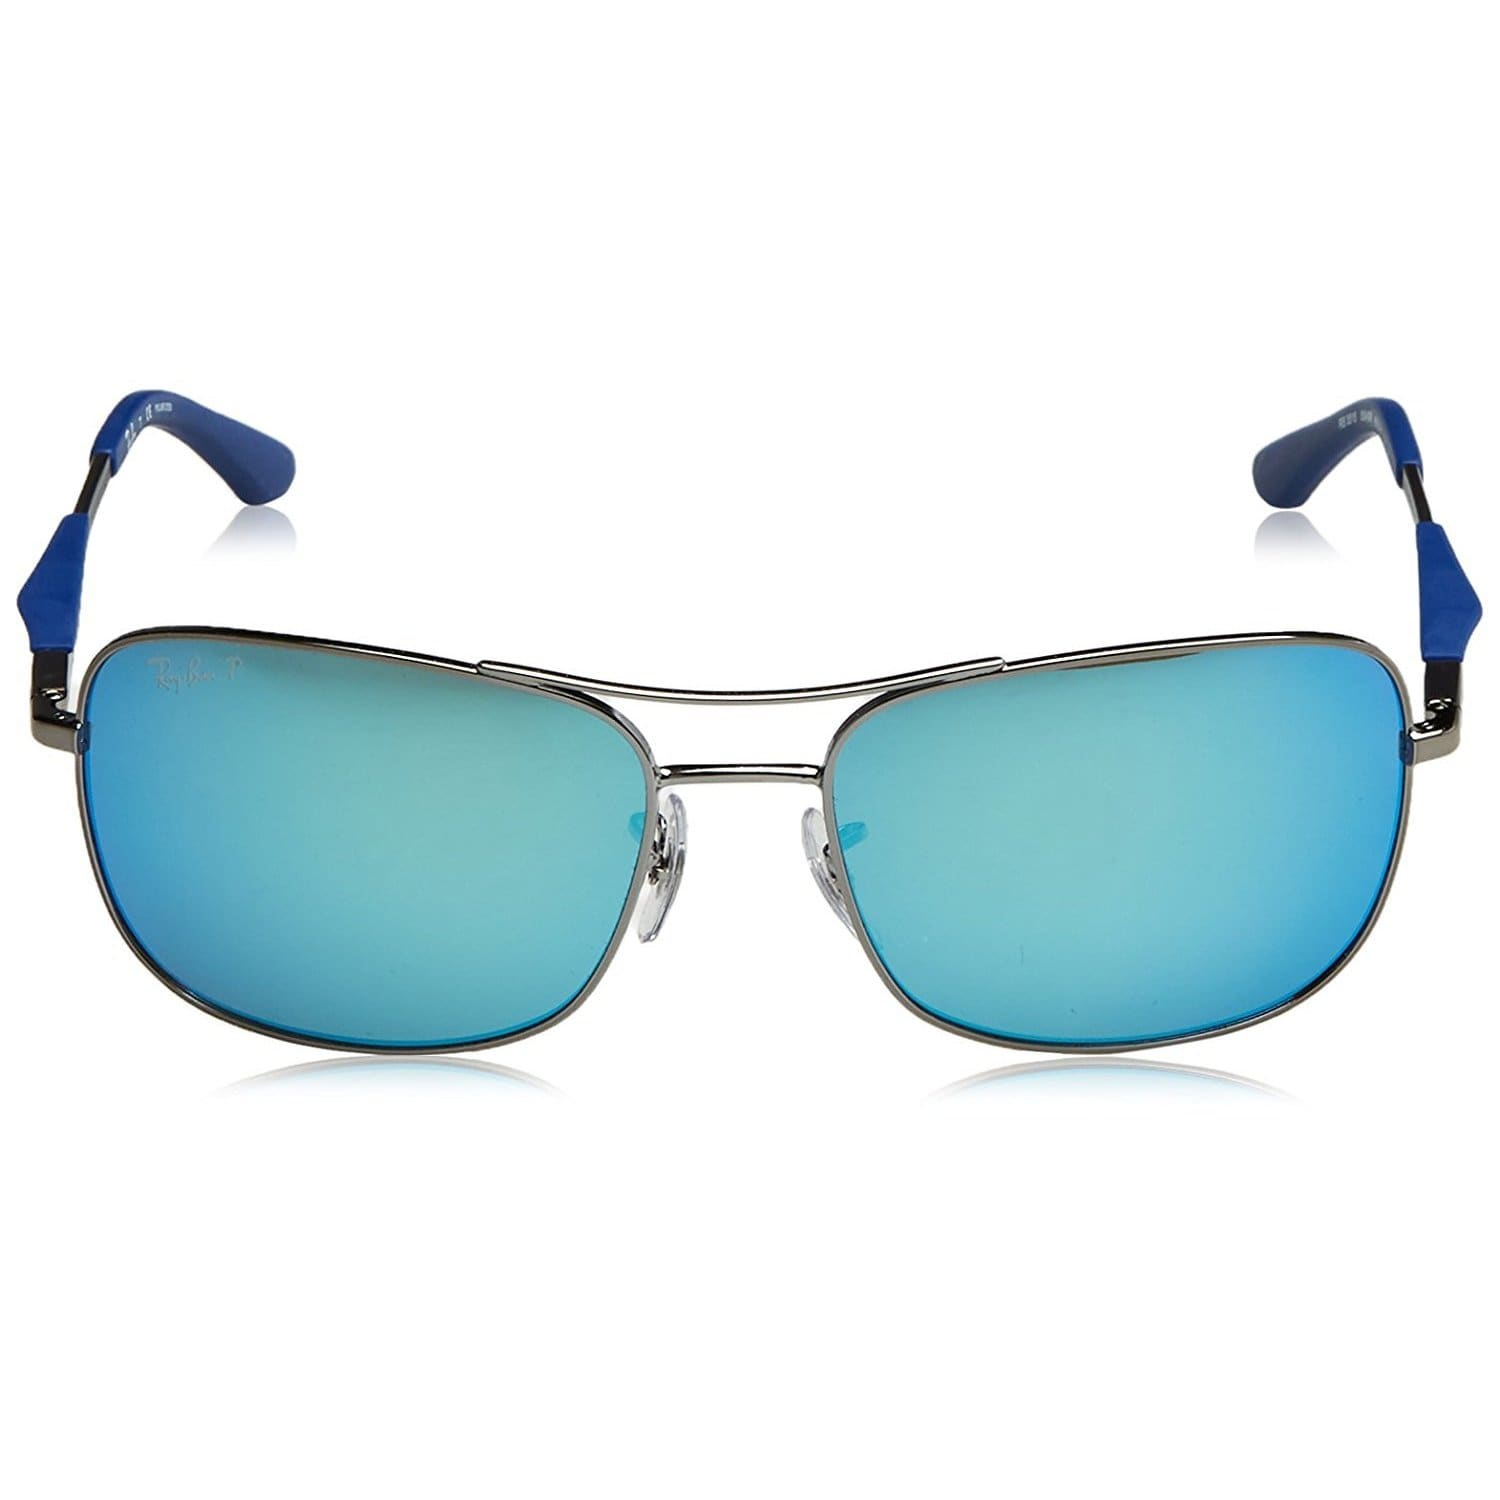 d1a0d02789 Shop Ray-Ban Men s RB3515 004 9R Gunmetal Frame Polarized Blue Flash 61 mm  Lens Sunglasses - Free Shipping Today - Overstock - 16740926